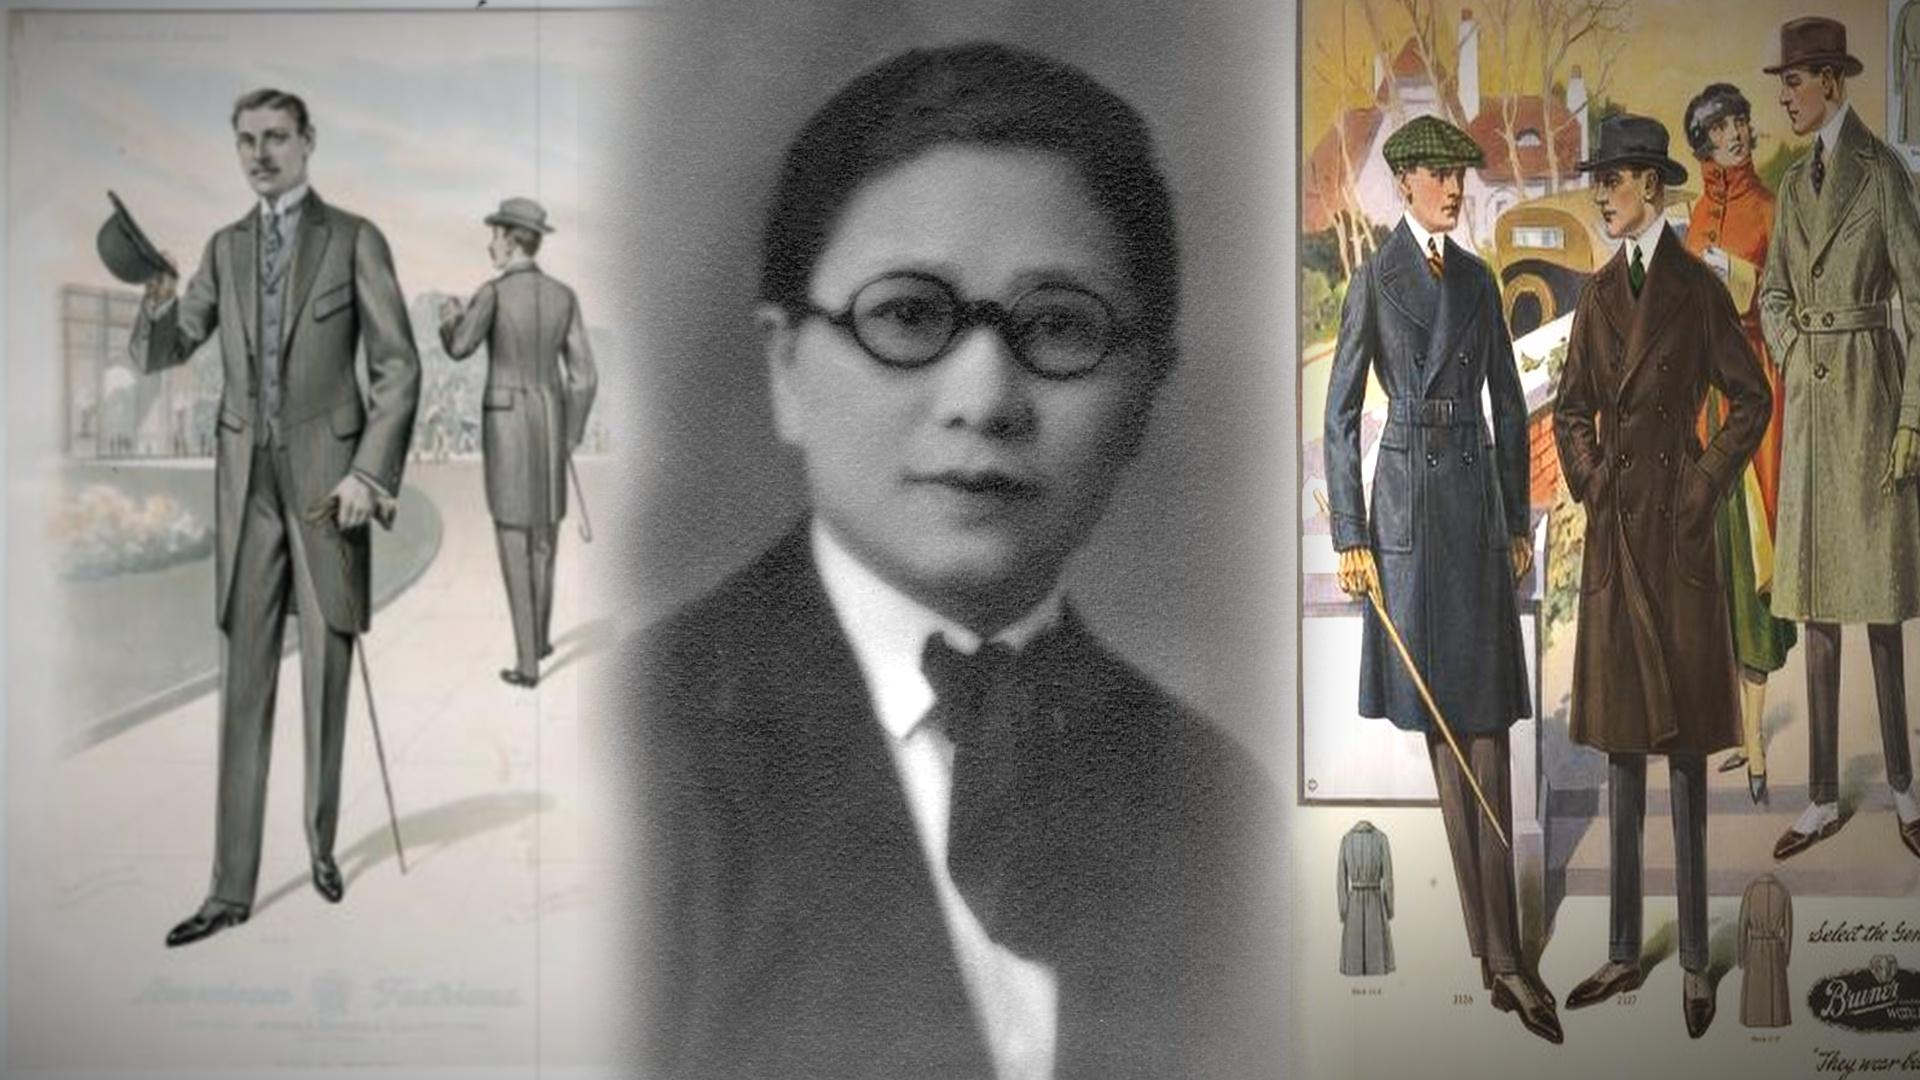 Margaret Chung dressed in menswear